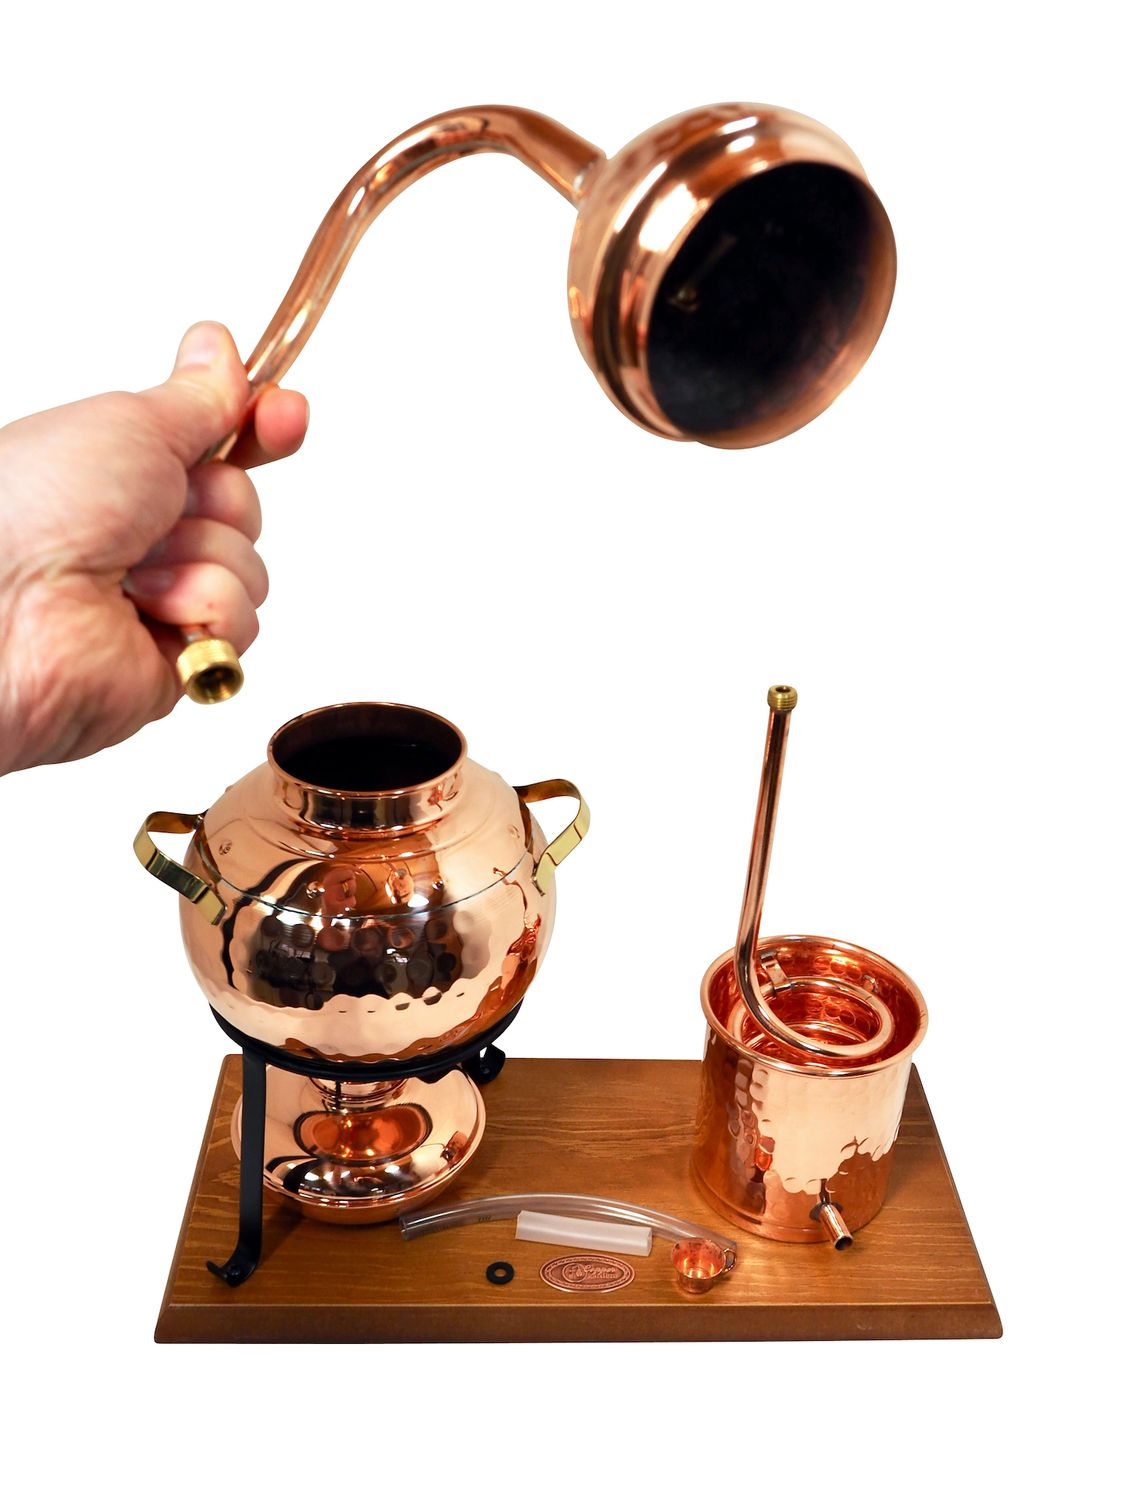 CopperGarden®  still 2L Alembic with spirit lamp